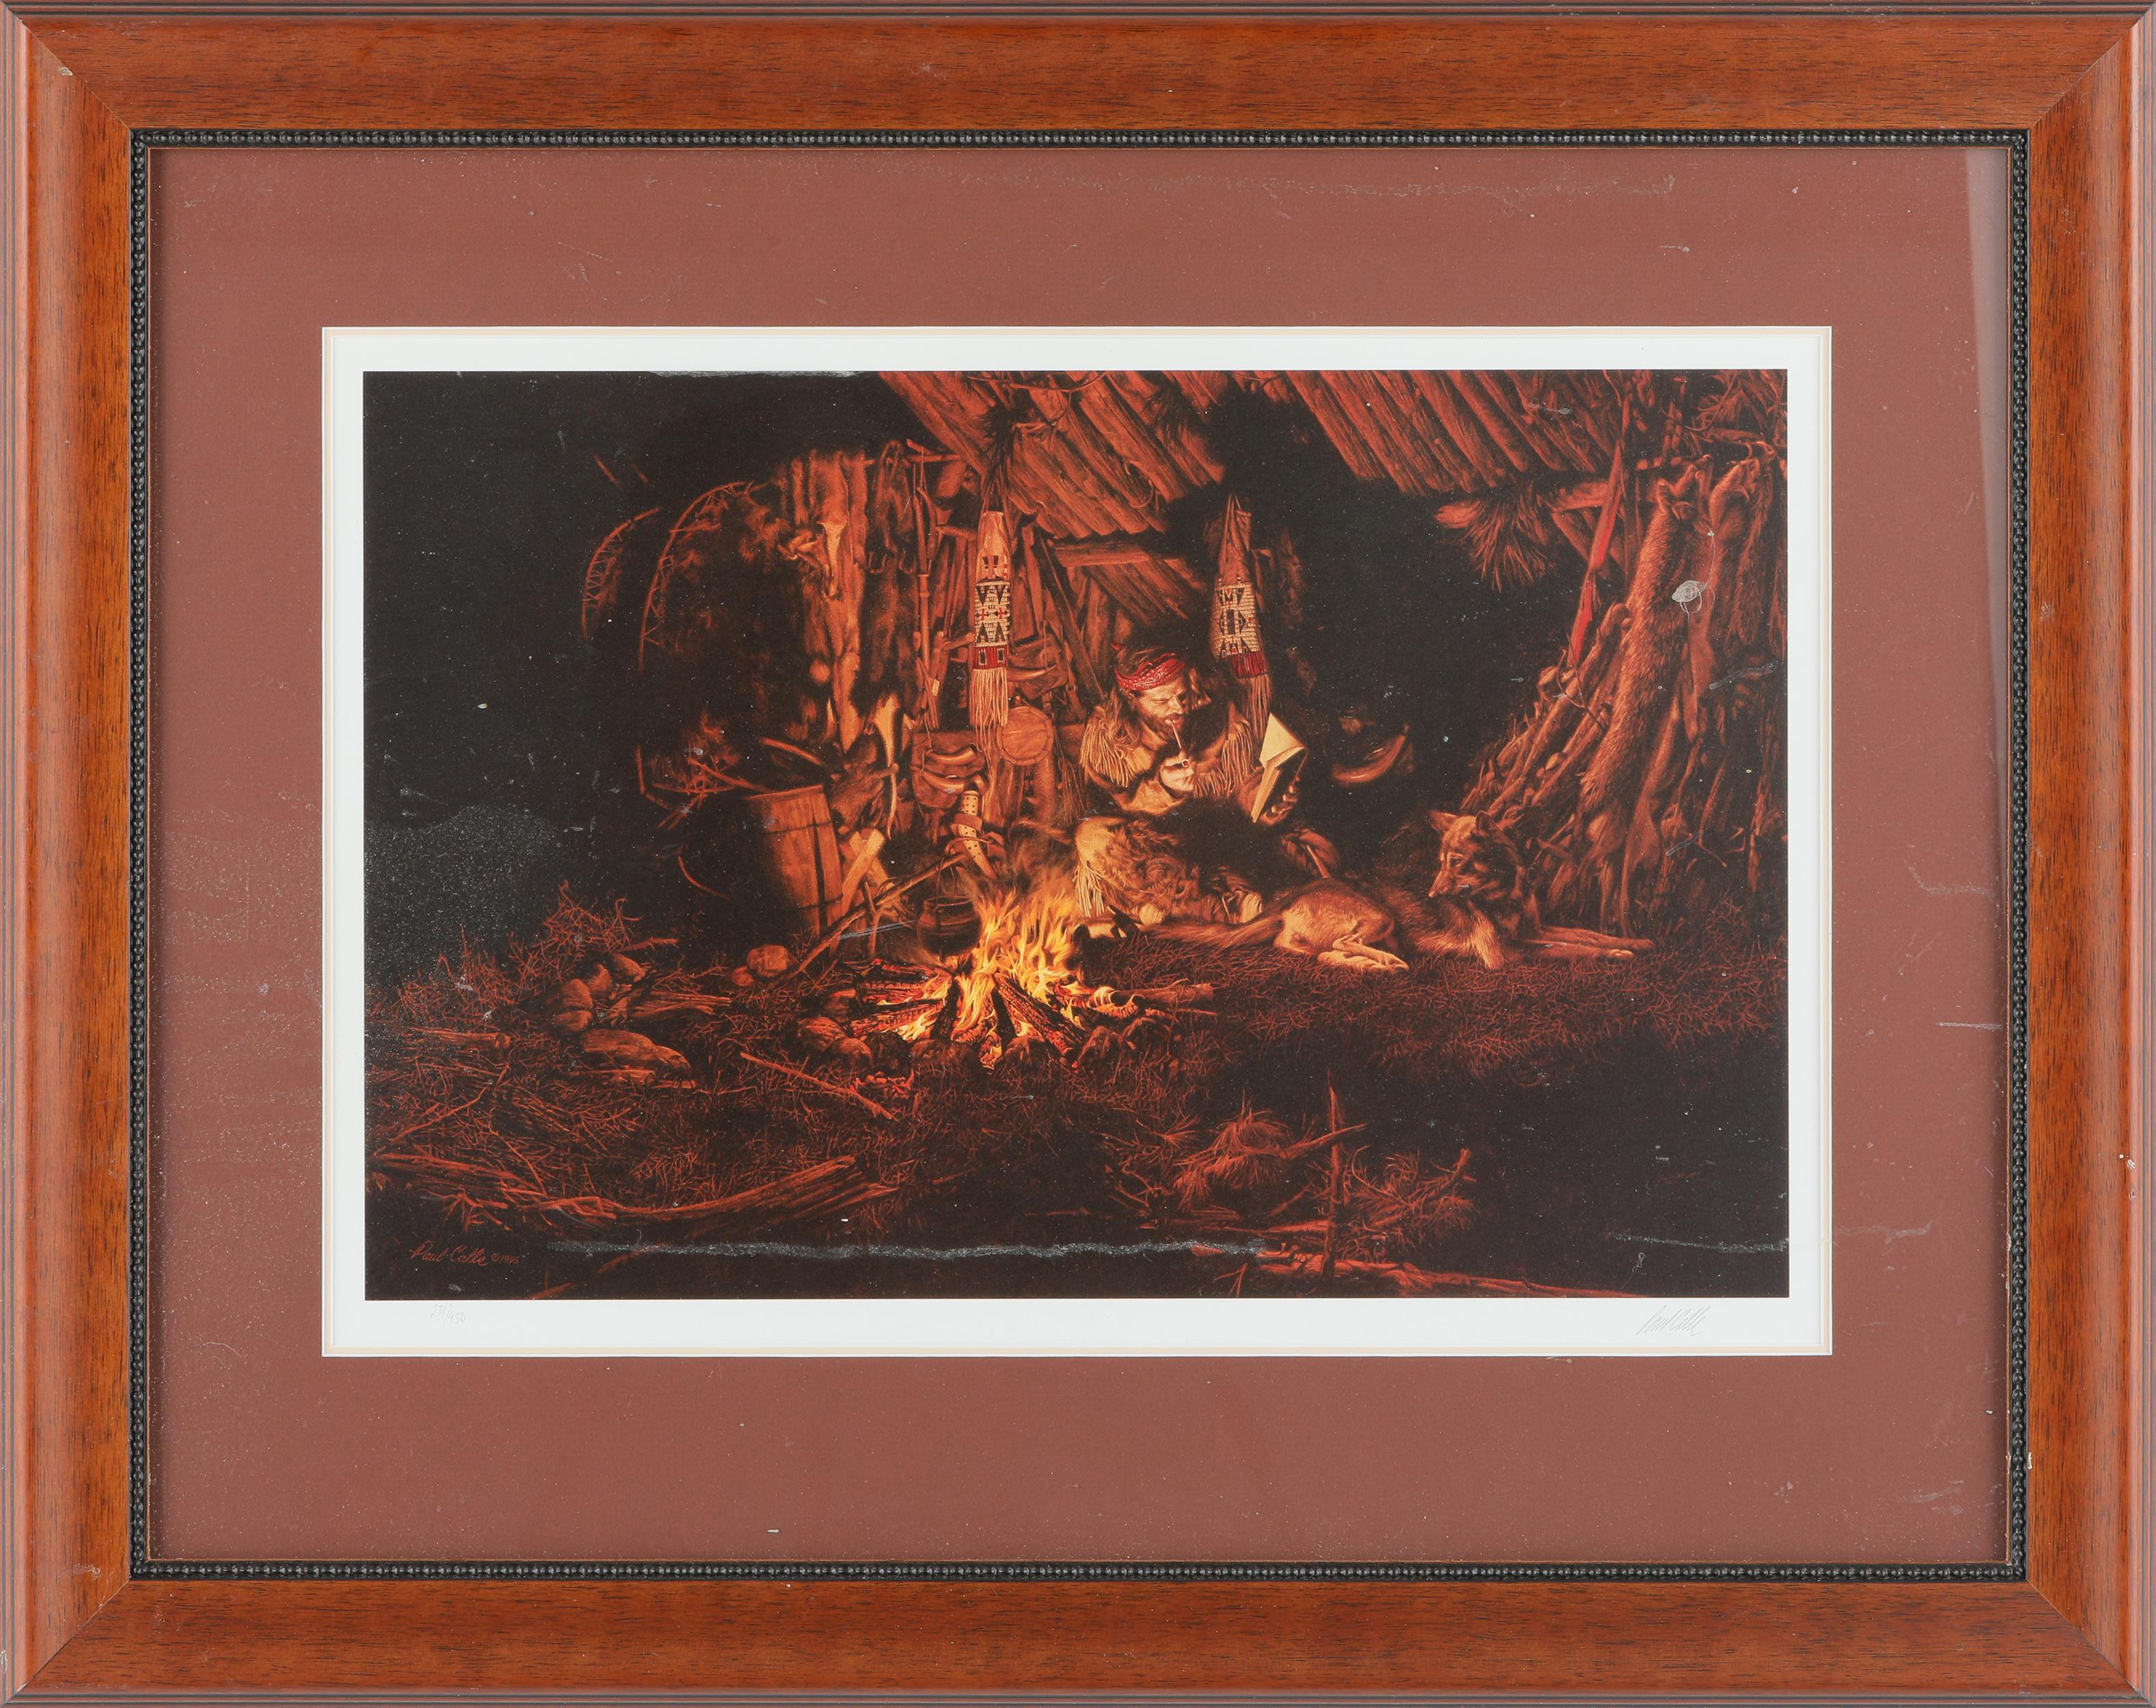 """Paul Calle's """"Fireside Companions"""" Limited Edition Framed Print"""